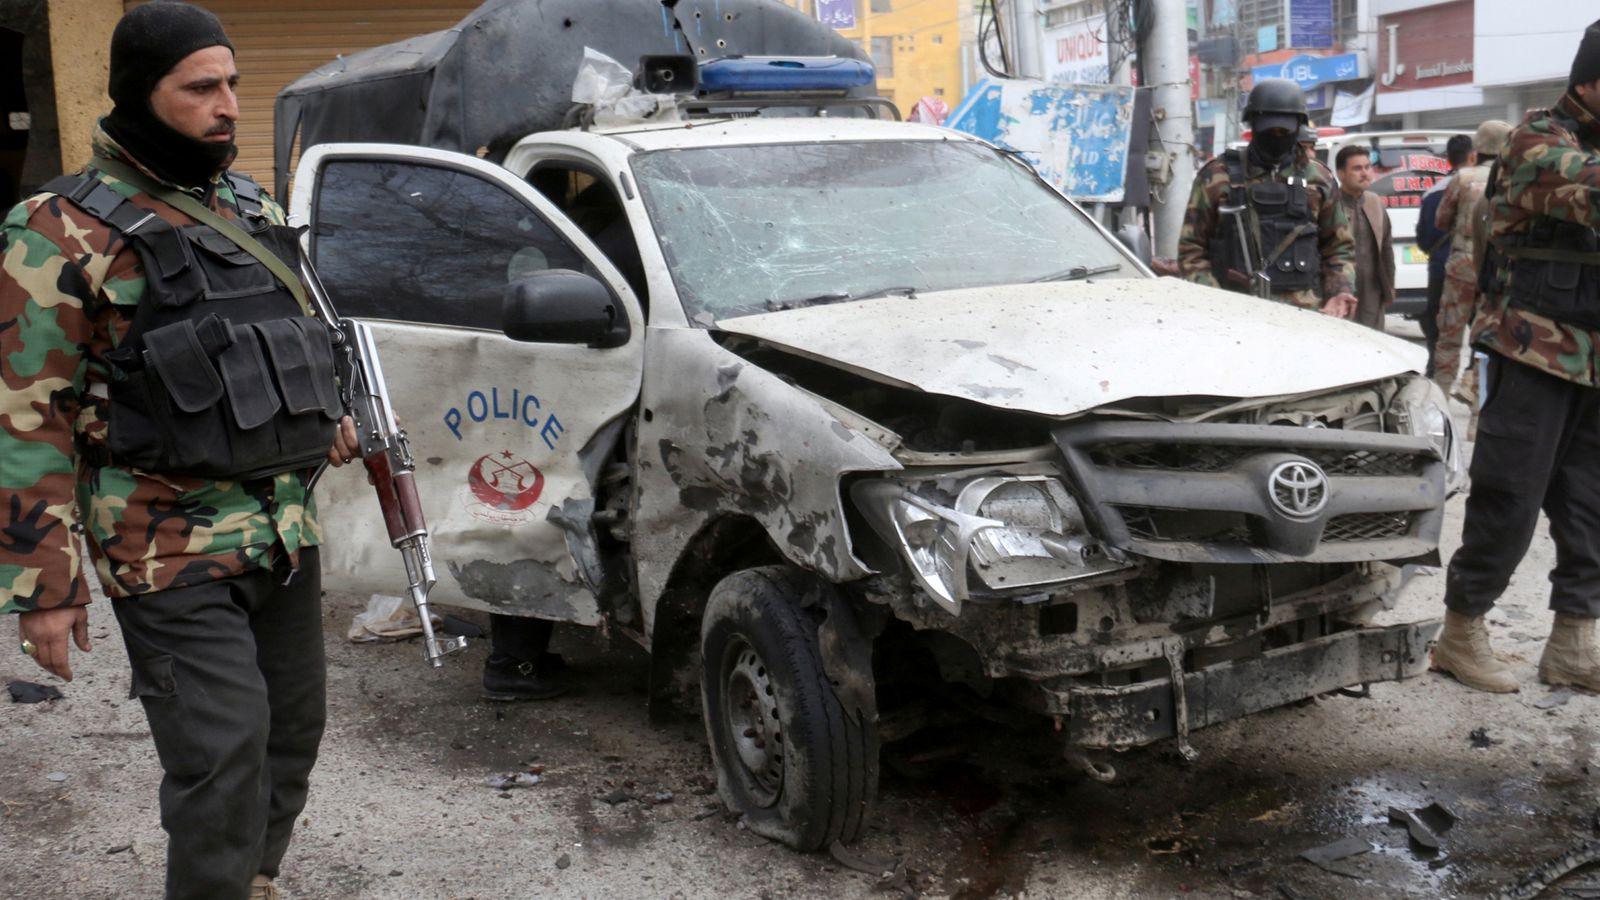 Pakistan: At least 10 killed in suicide bombing in Pakistan